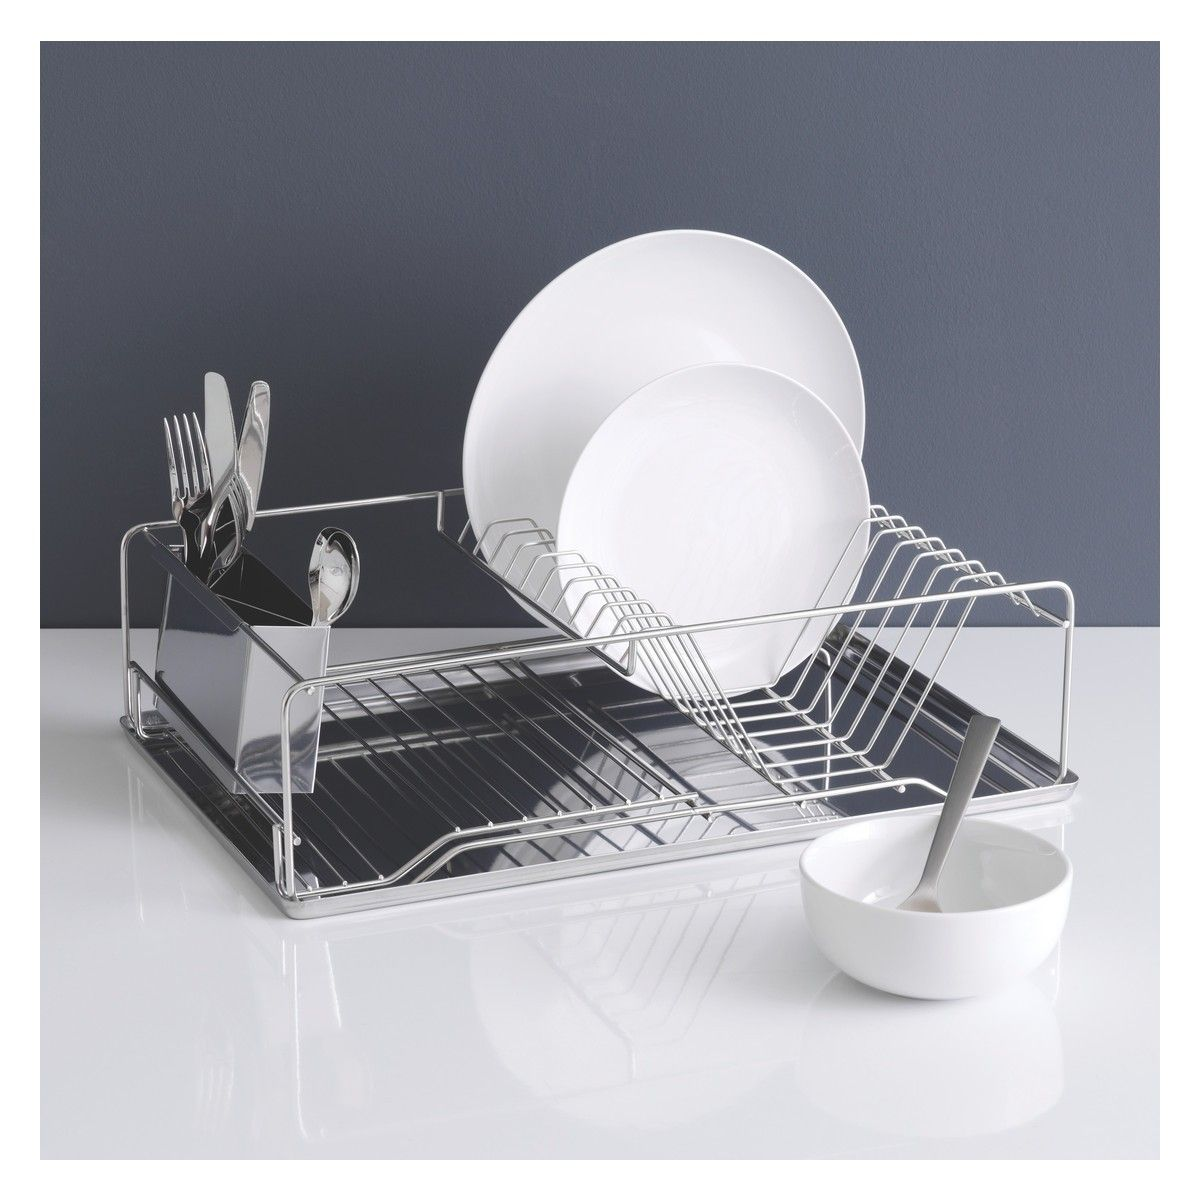 Sabatier Dish Rack Gorgeous Decker Stainless Steel Single Level Dish Drainer  Dish Drainers Inspiration